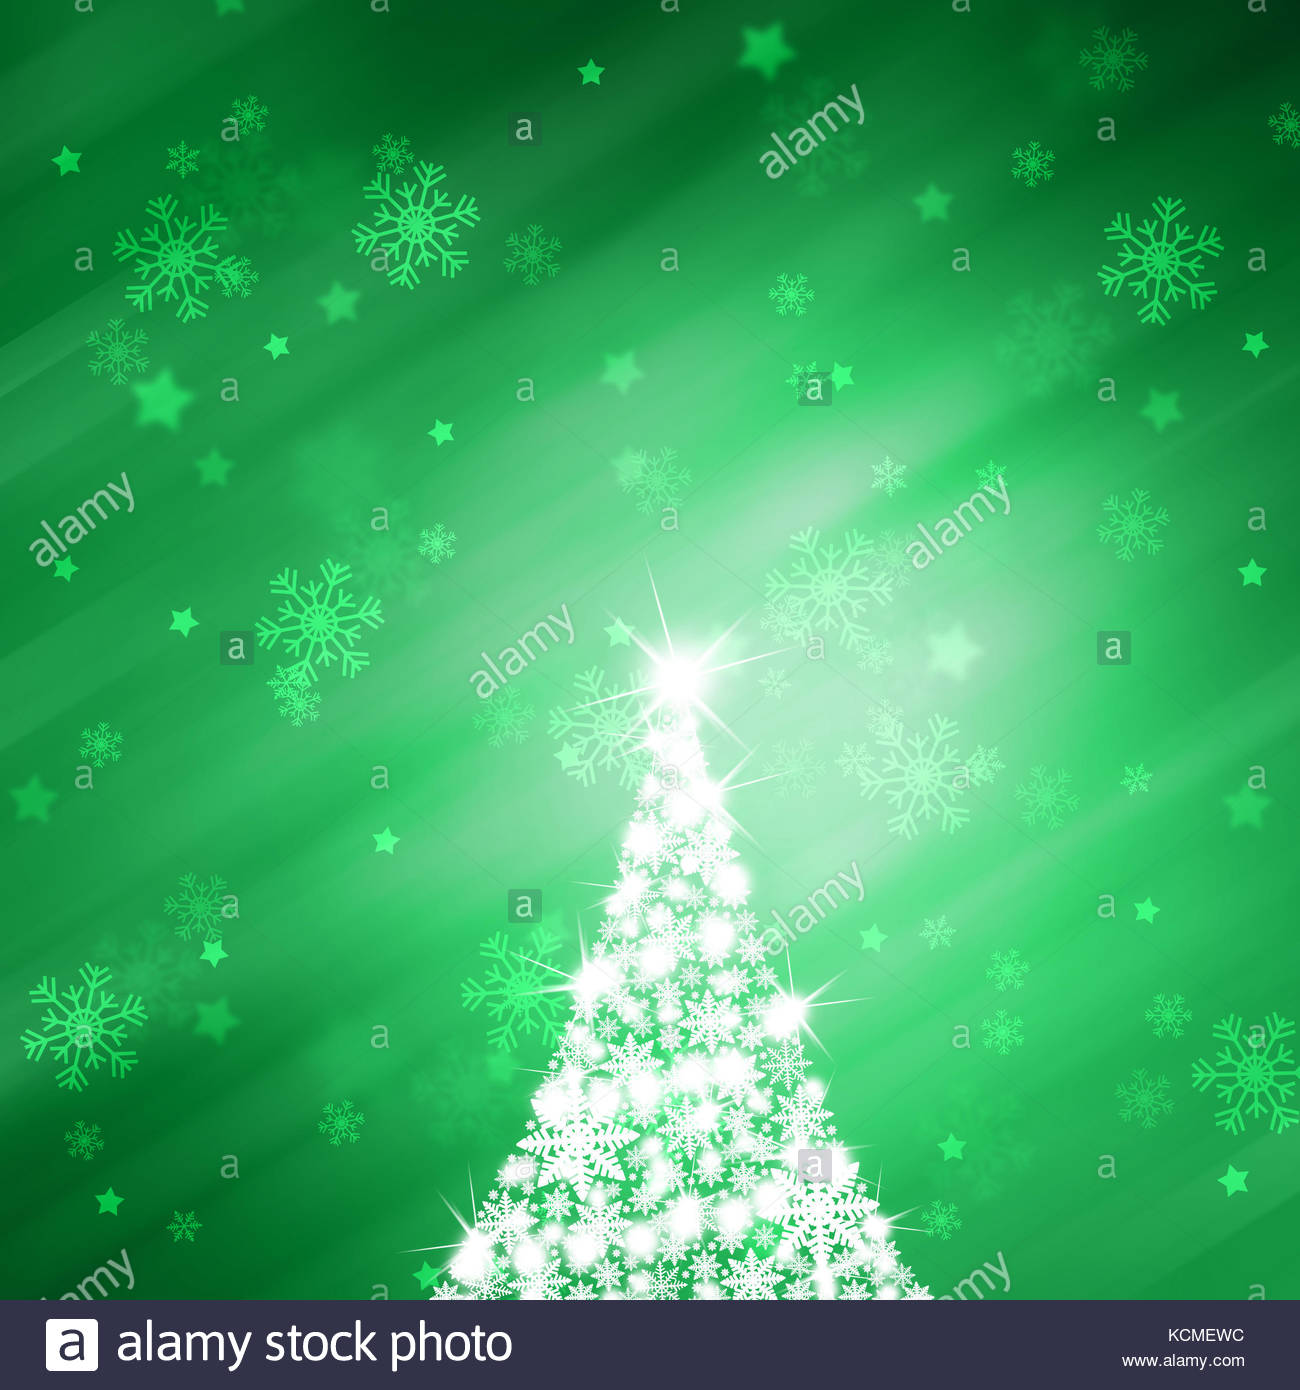 Christmas Green Color.Illustrated Snowflake Christmas Tree With Sparkle And